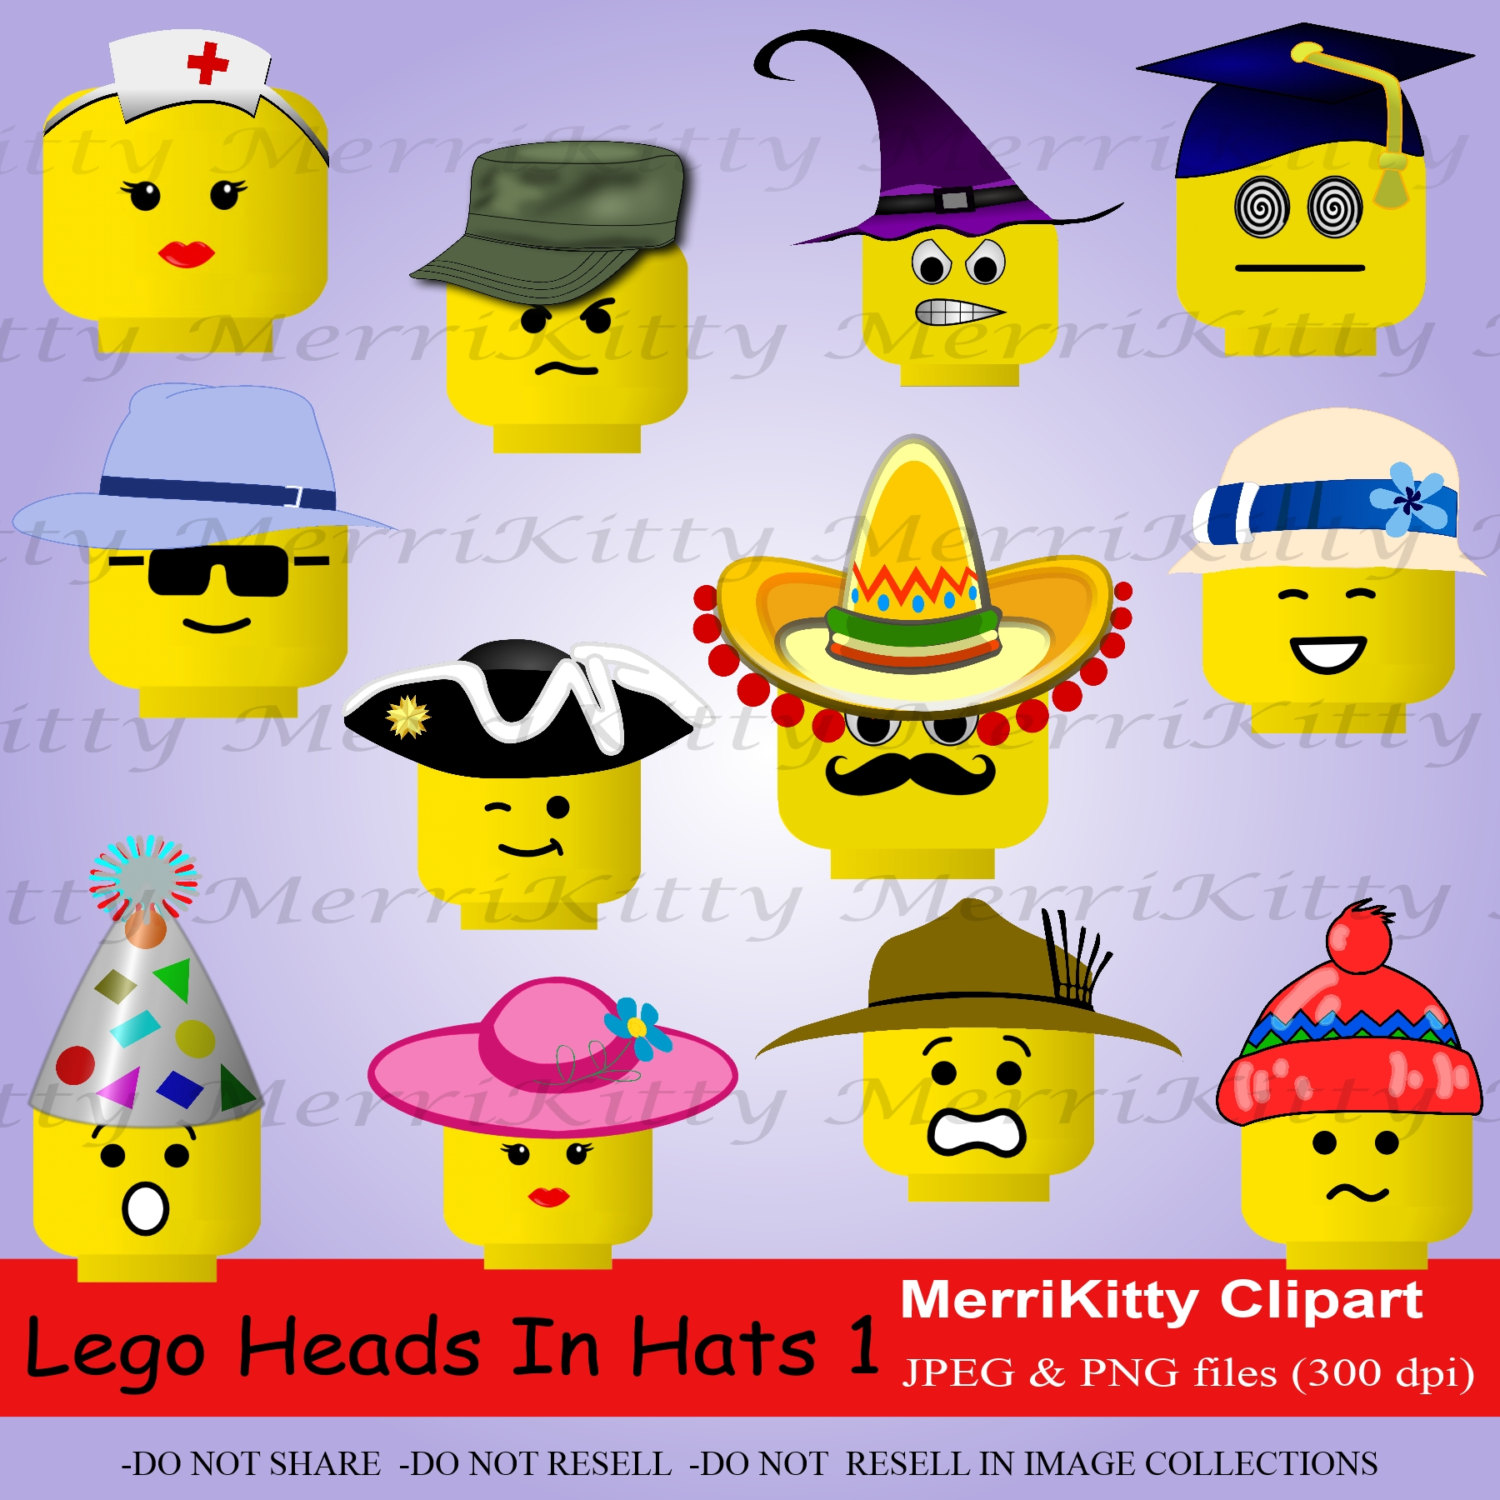 Lego clipart hat Is Scrapbook This a Lego